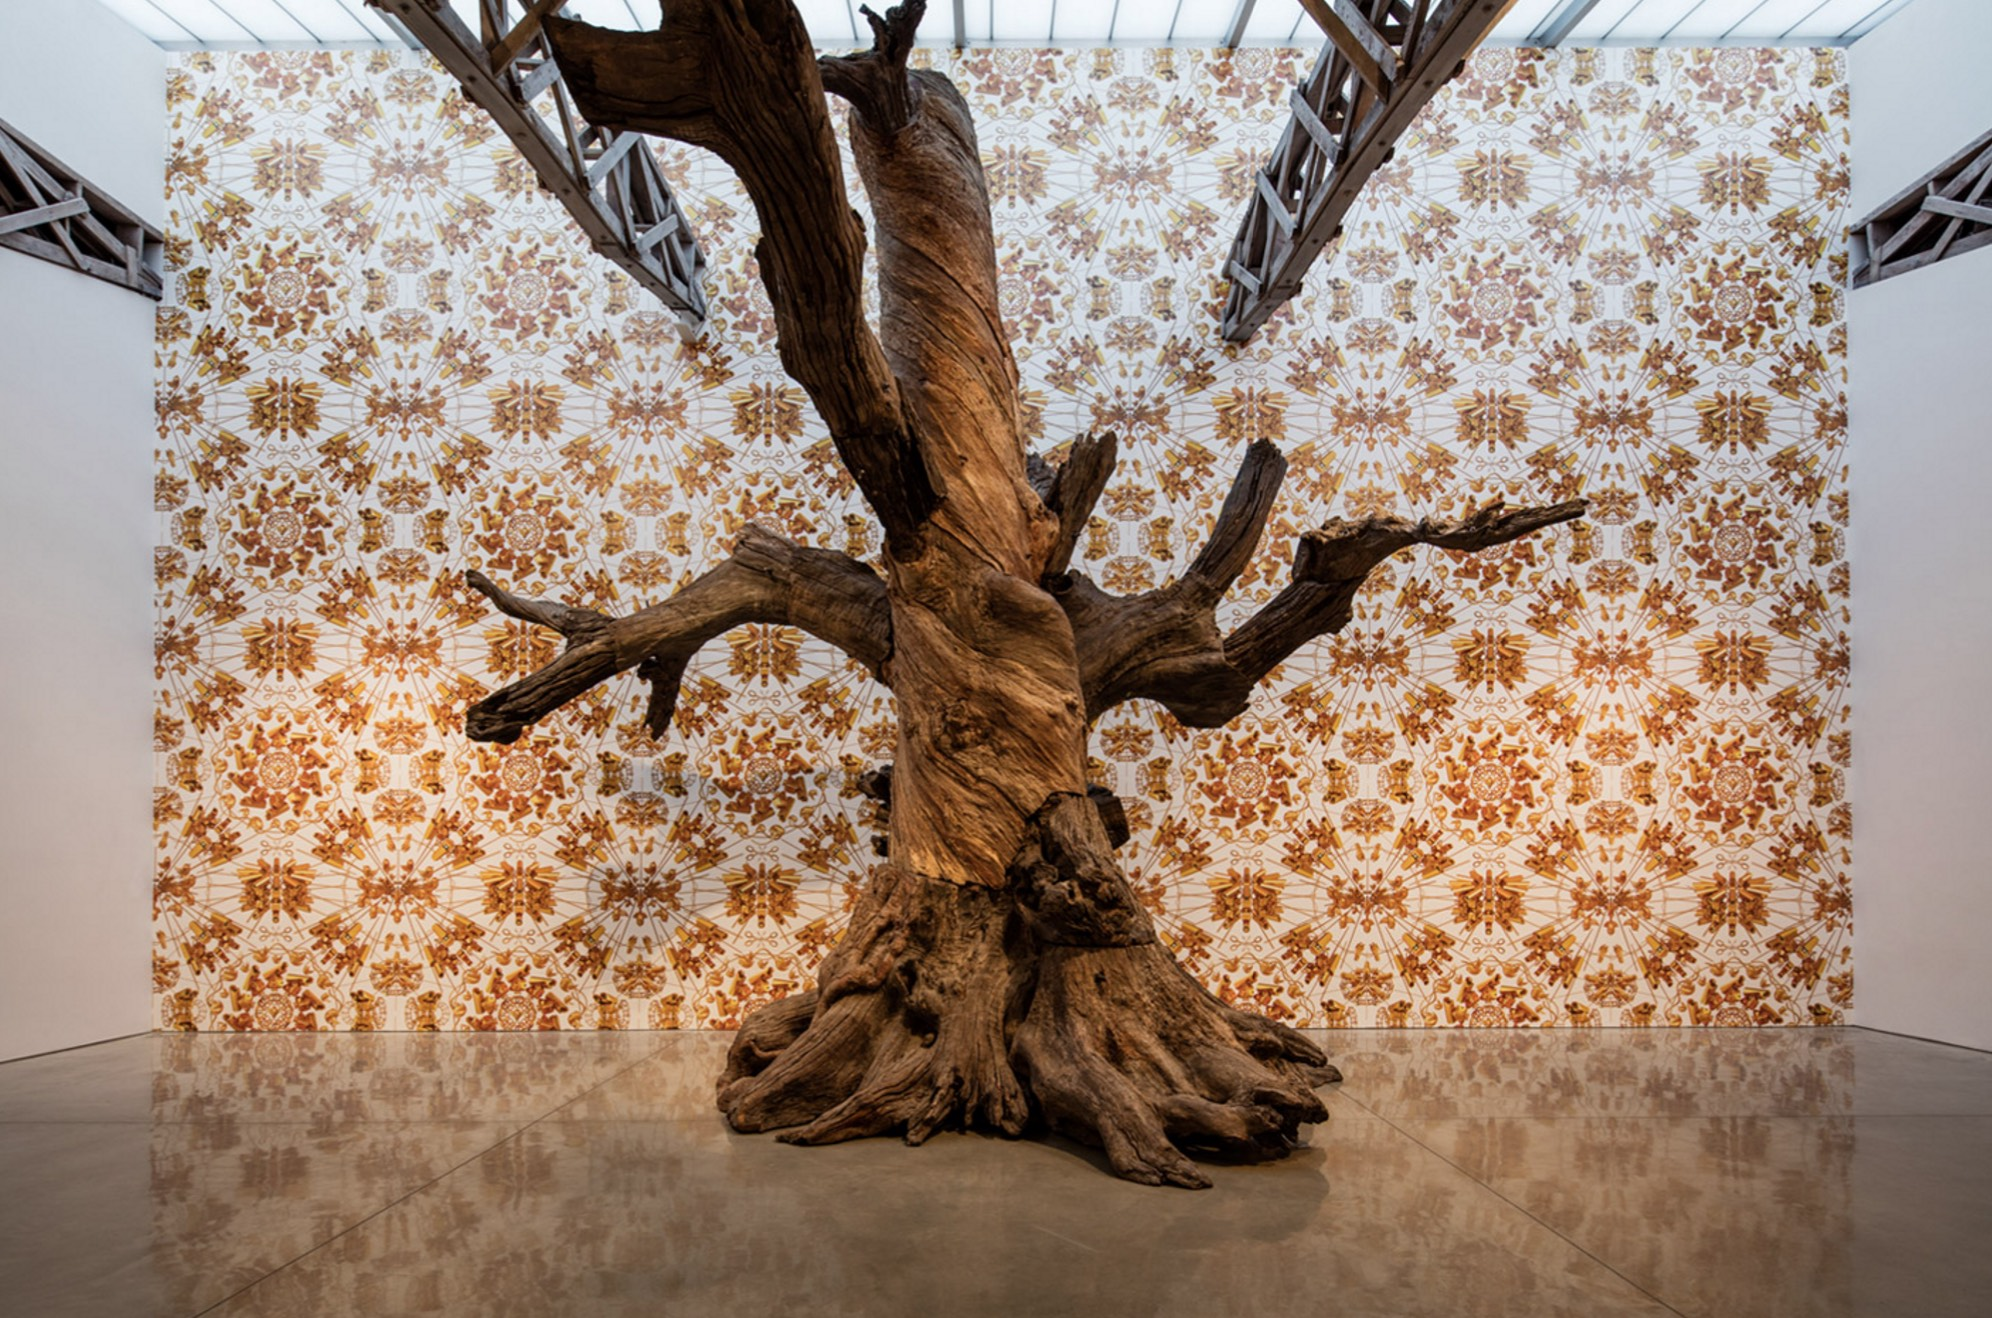 Ai Weiwei, Roots and Branches, 2016. Mary Boone Gallery, New York. Courtesy of the artist and the gallery.